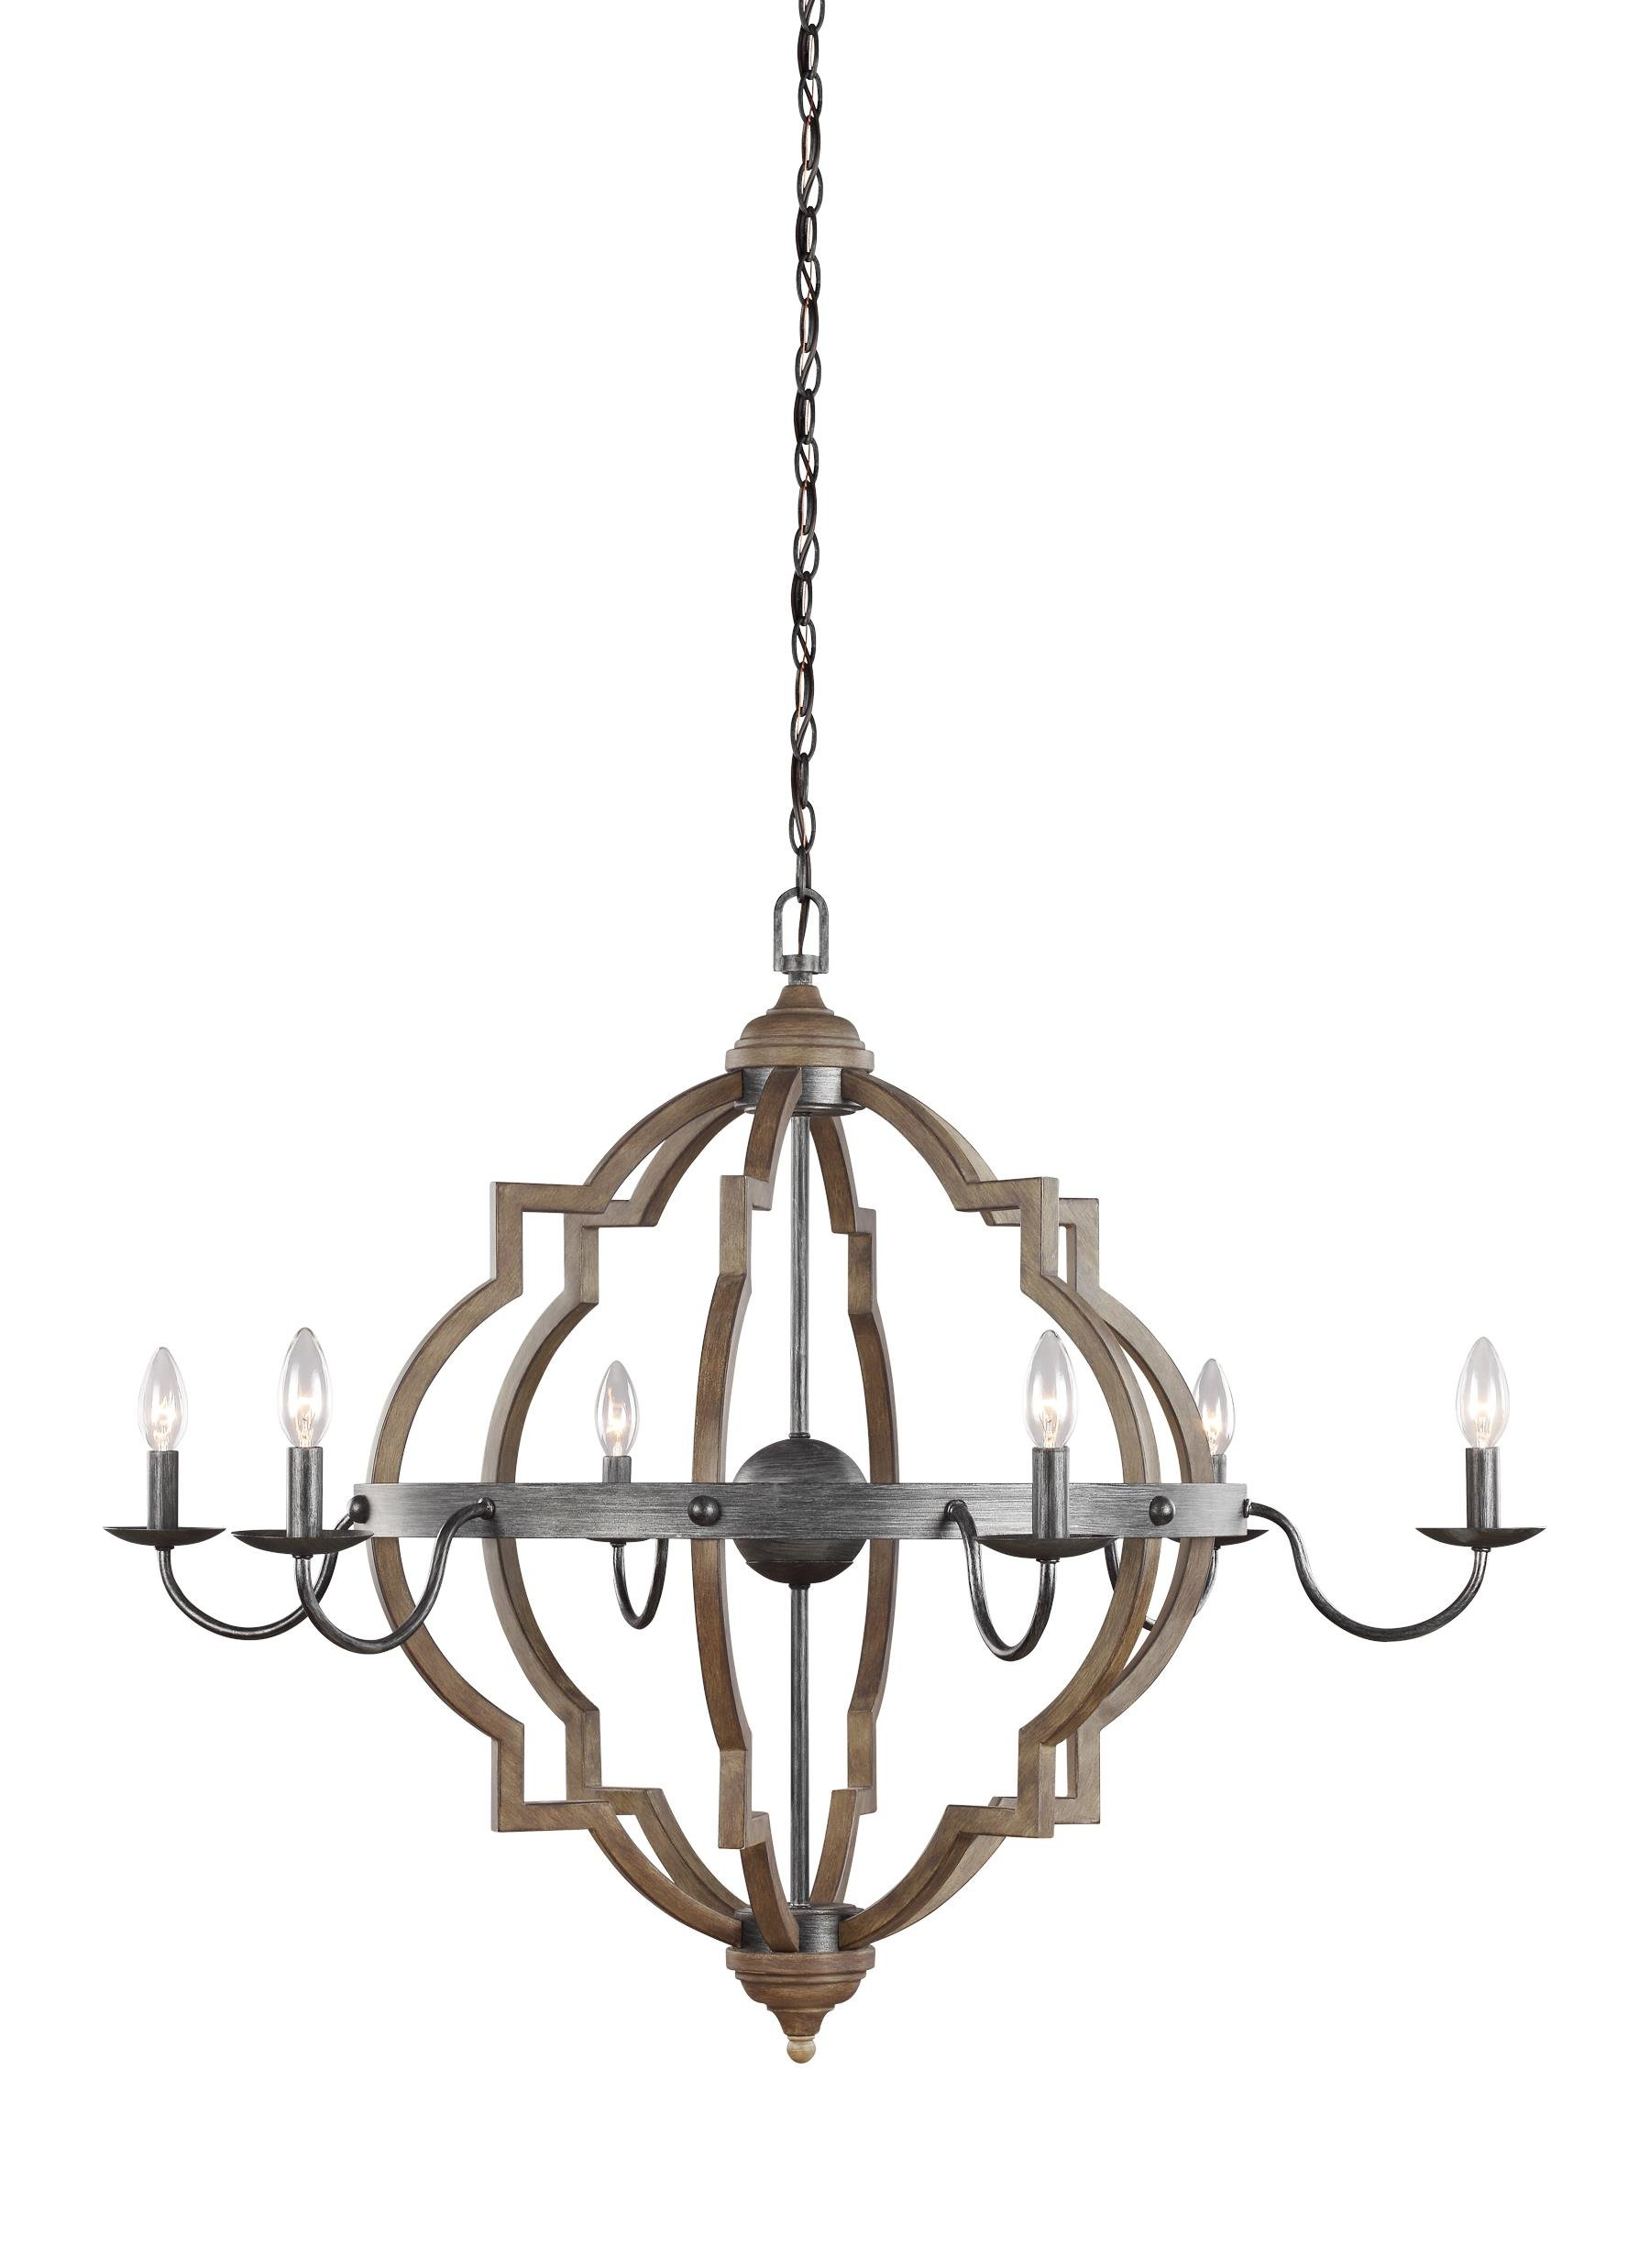 Donna 6 Light Candle Style Chandelier Within 2020 Hamza 6 Light Candle Style Chandeliers (Gallery 12 of 20)